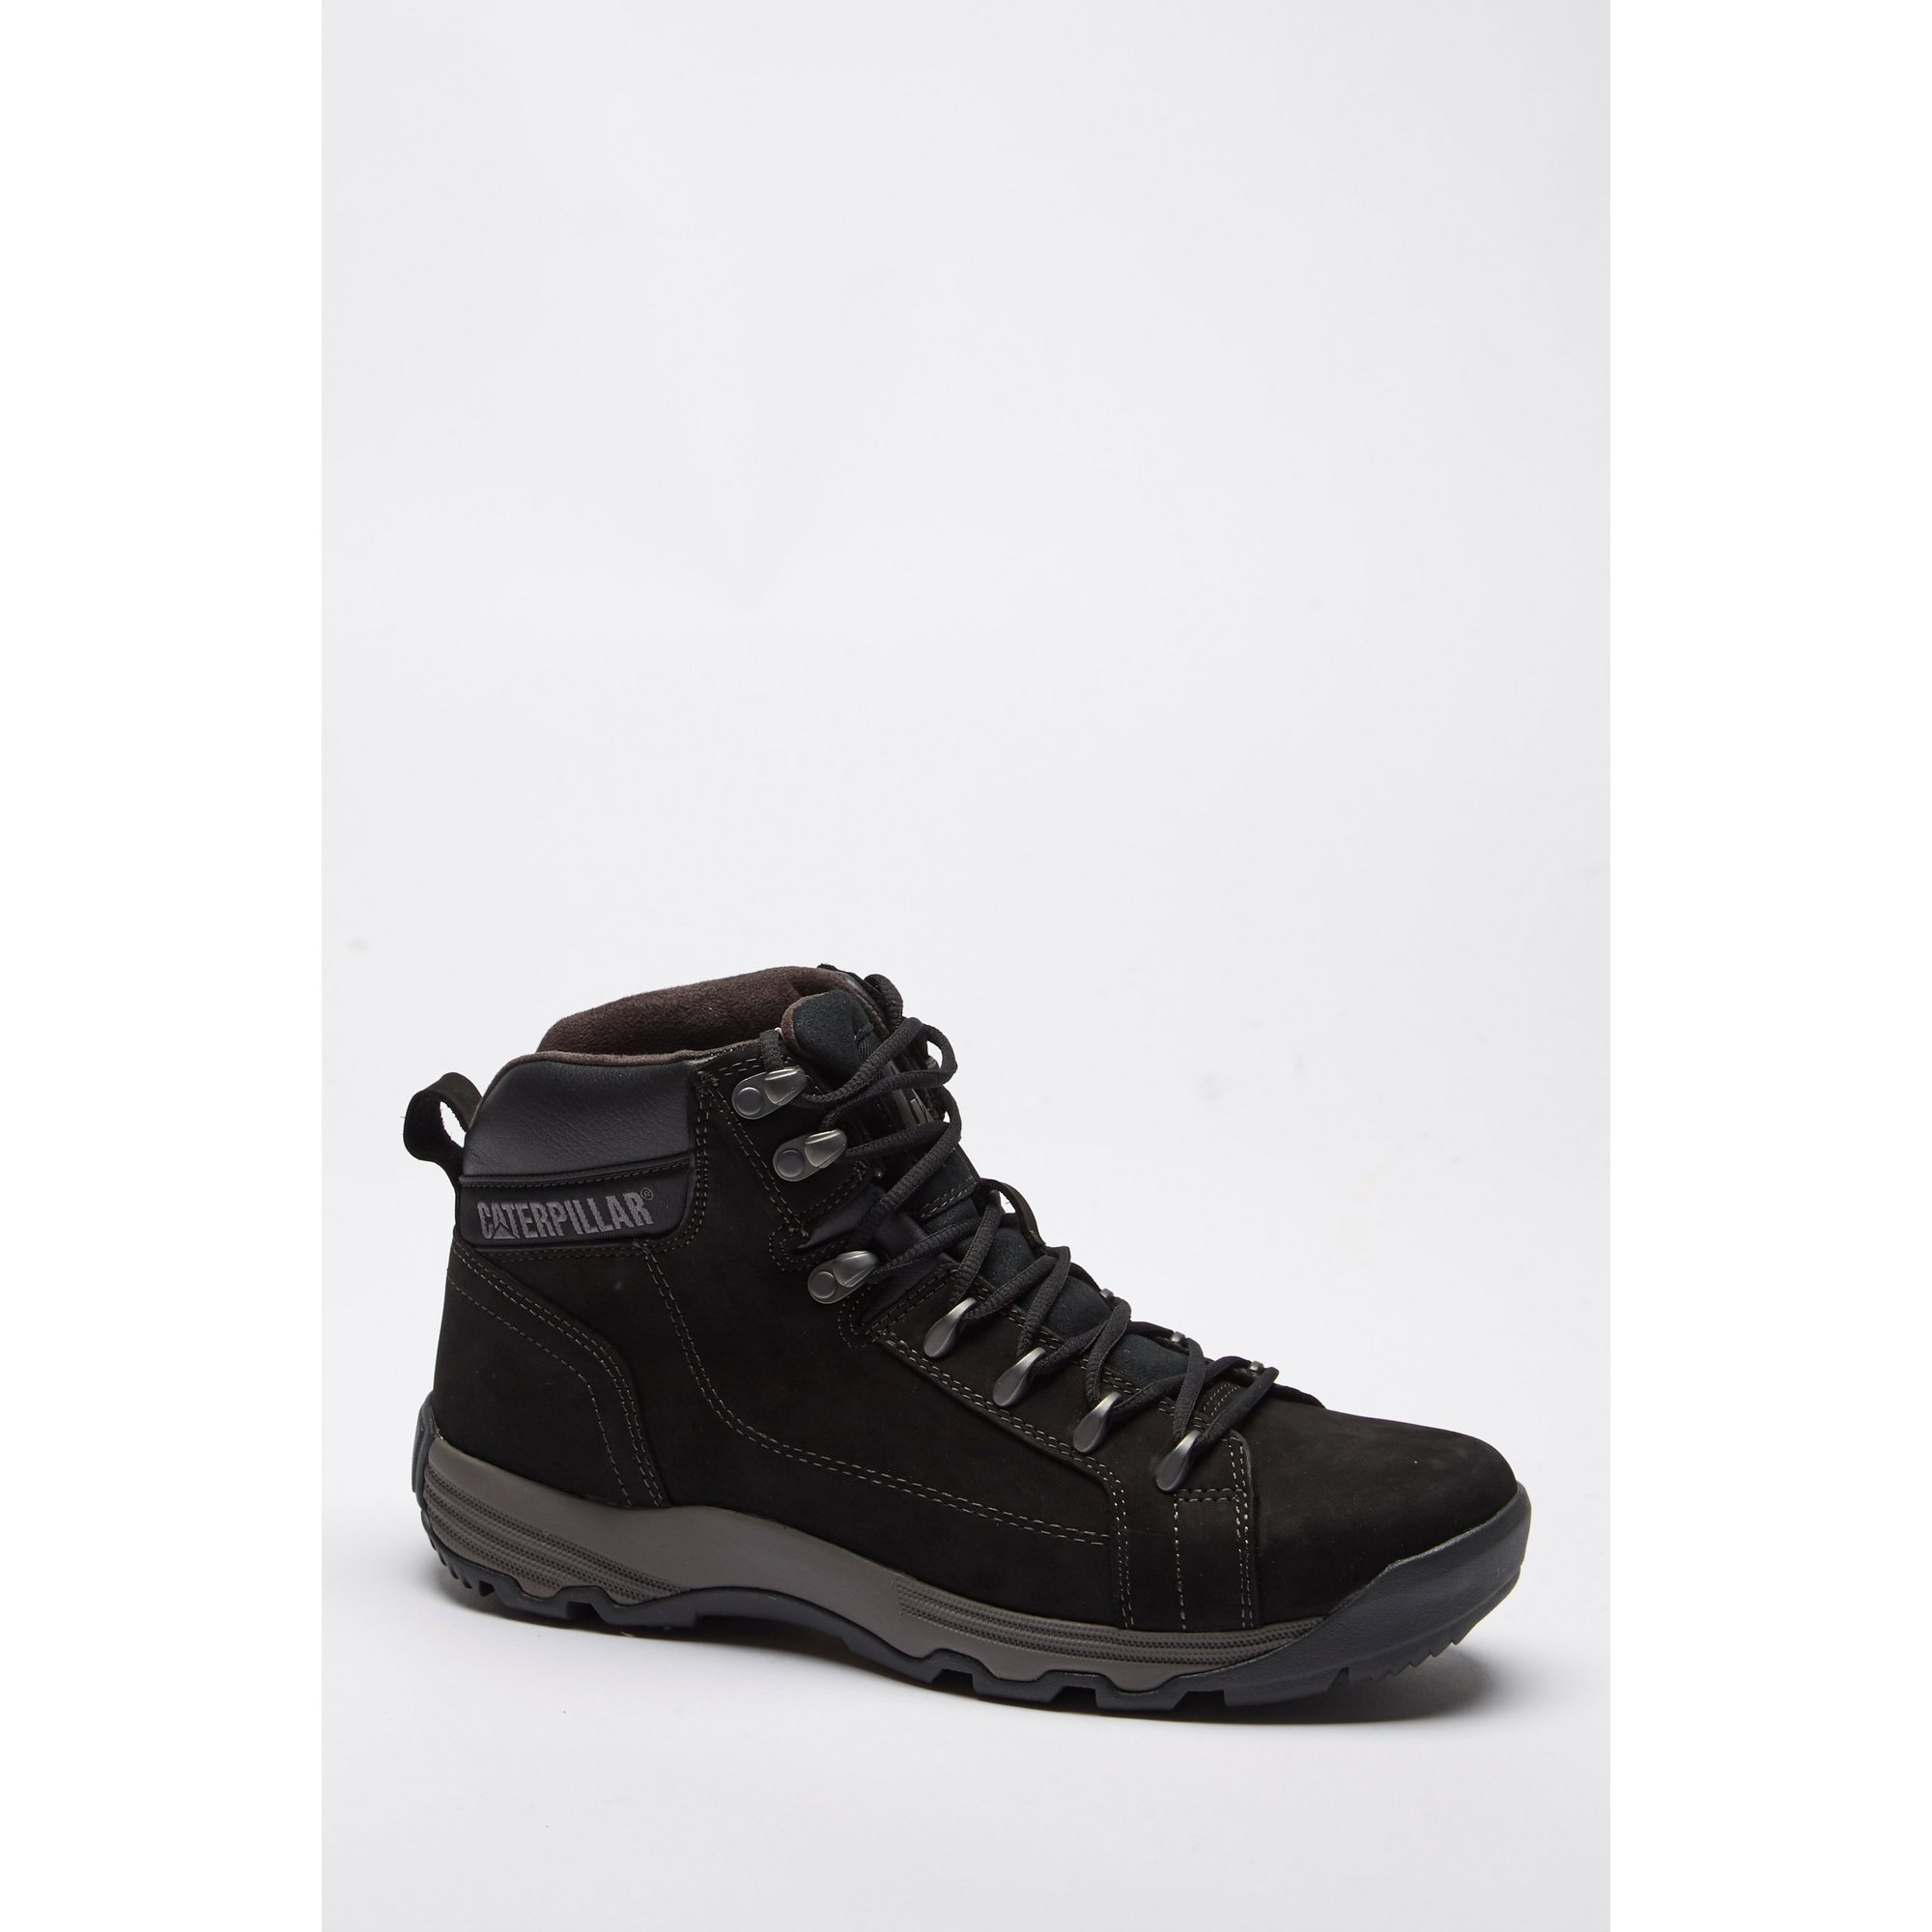 Image of Caterpillar Supersede Black Boots